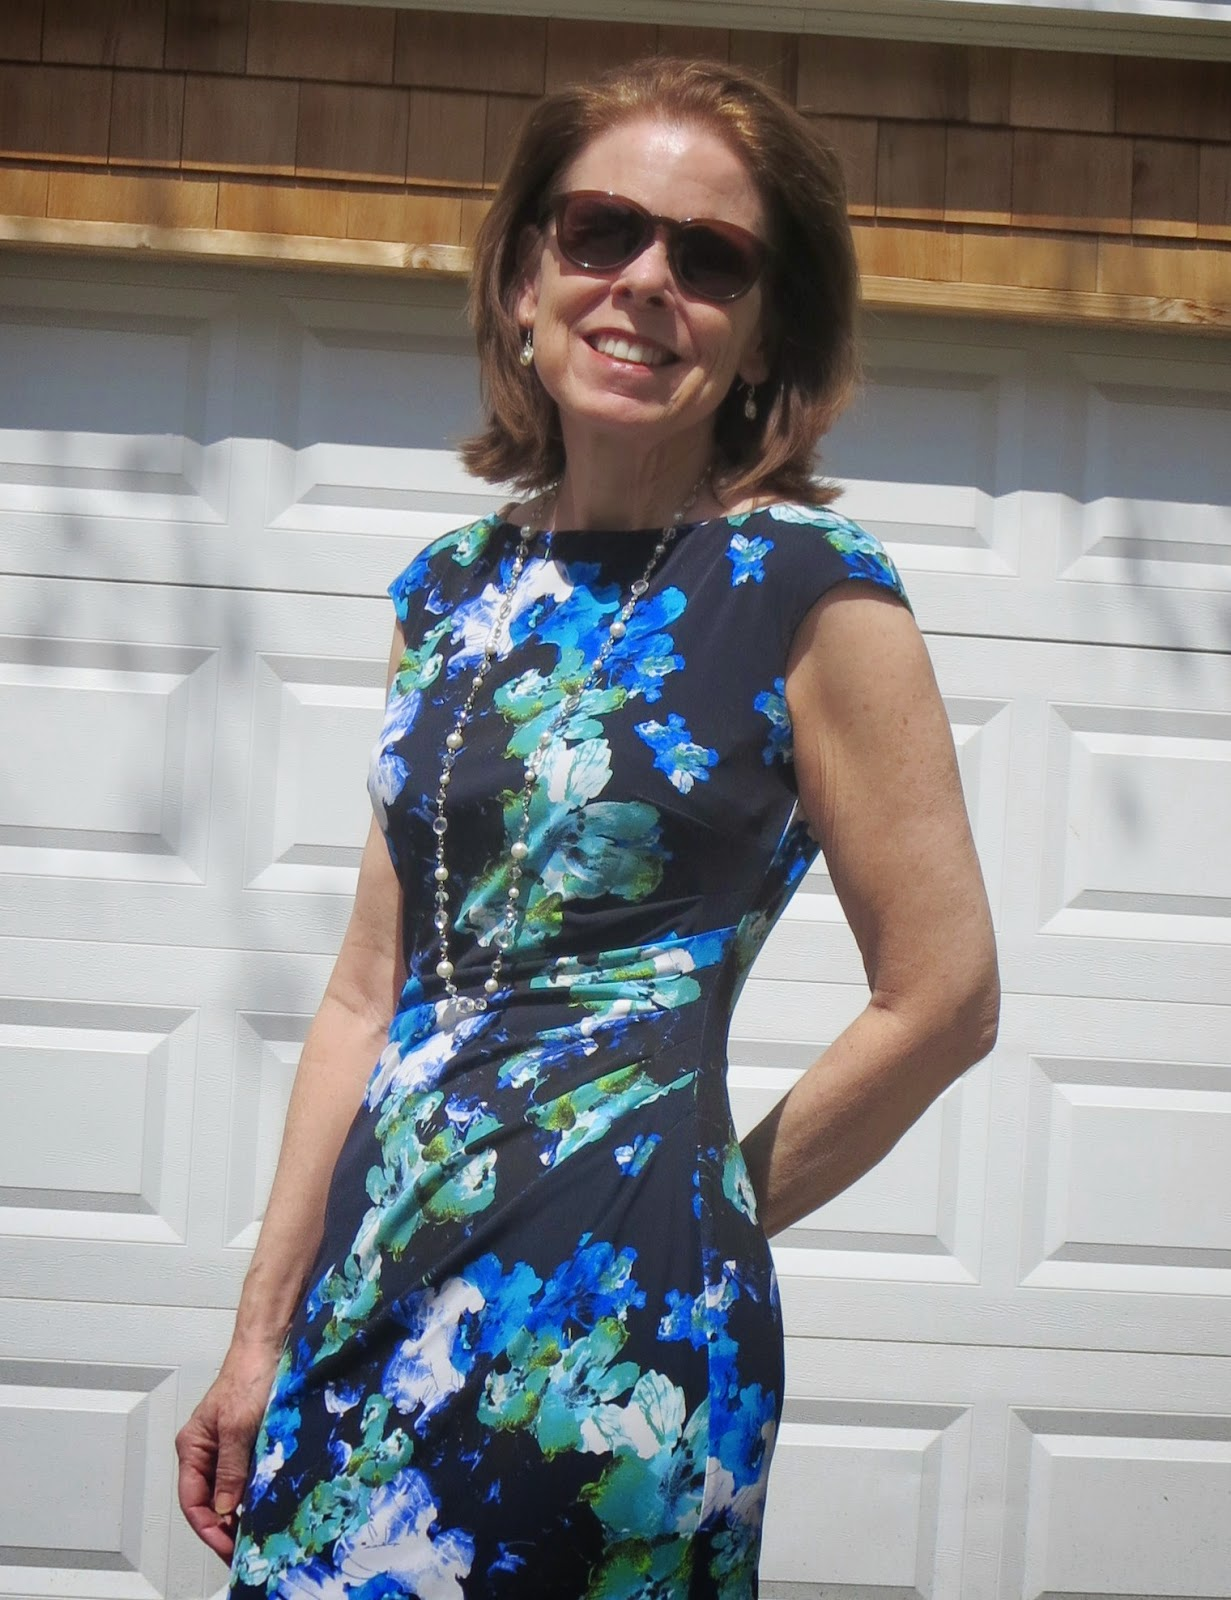 Flattering50: Top 10 Dress Styles for Women Over 50